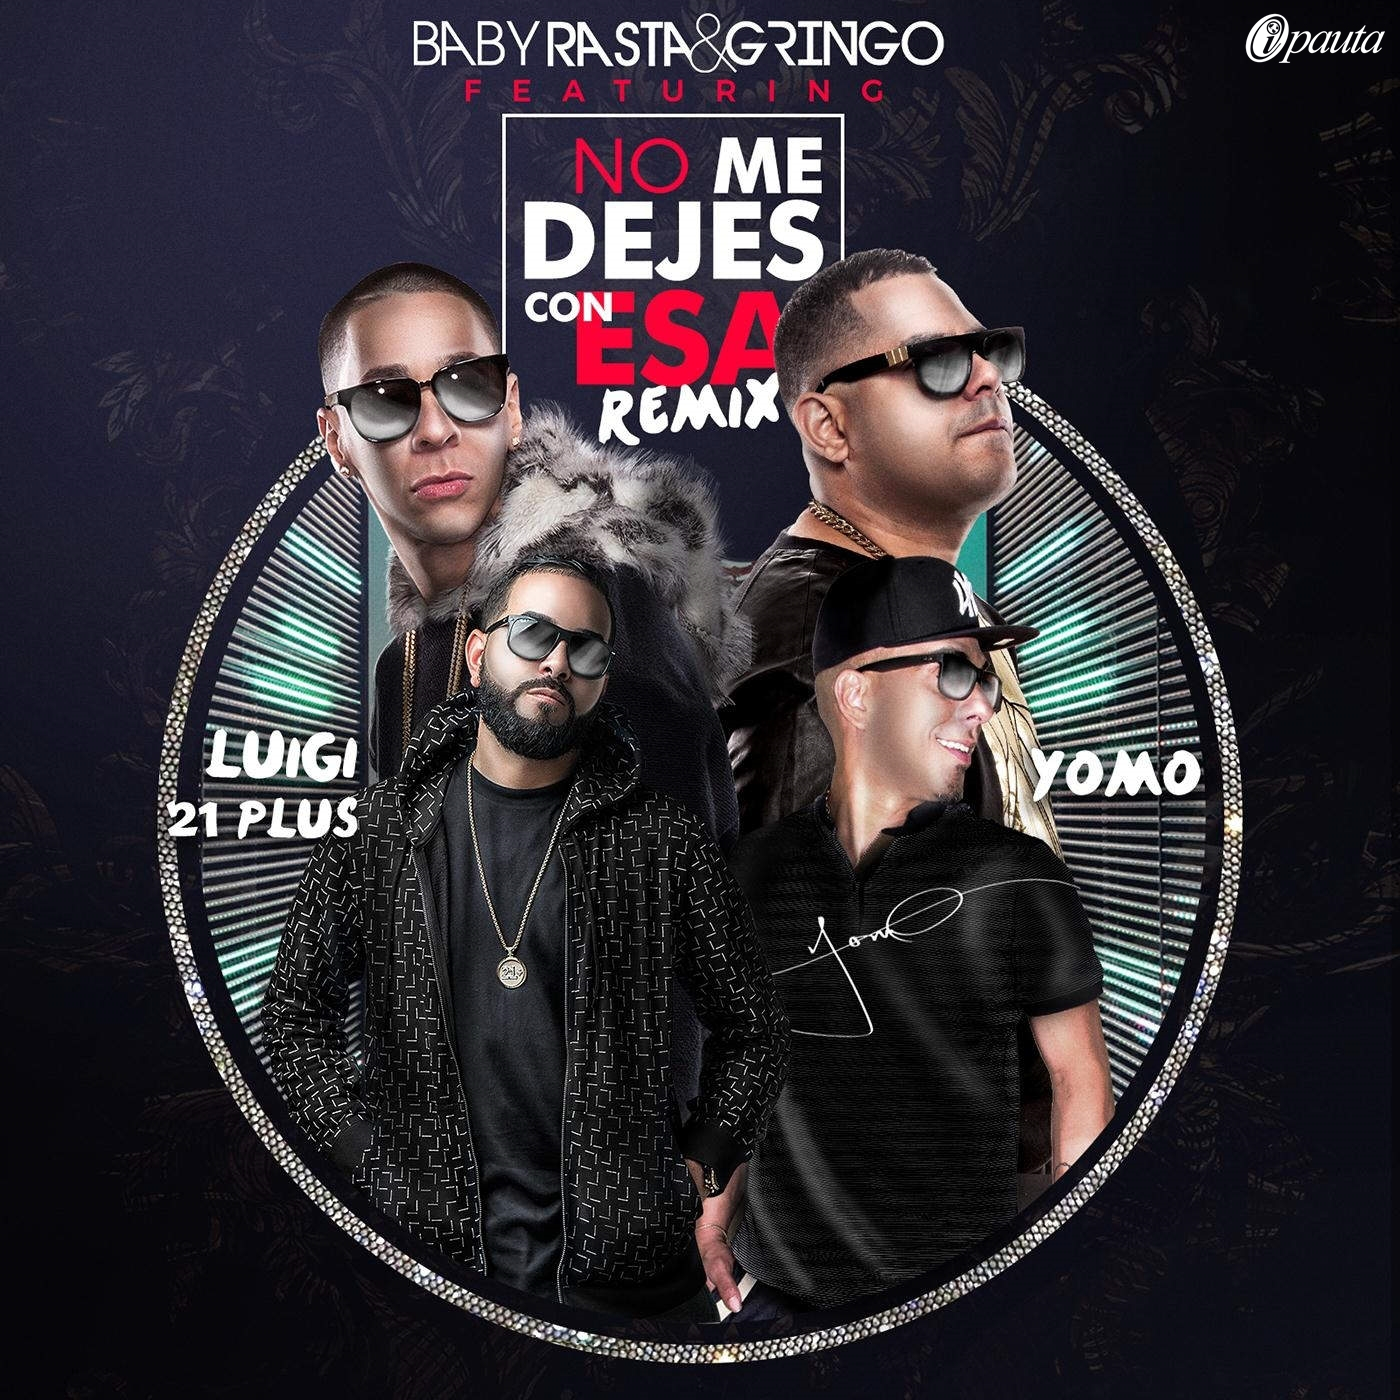 cover-ipauta-baby-rasta-y-gringo-ft-luigi-21-plus-y-yomo-no-me-dejes-con-esa-official-remix